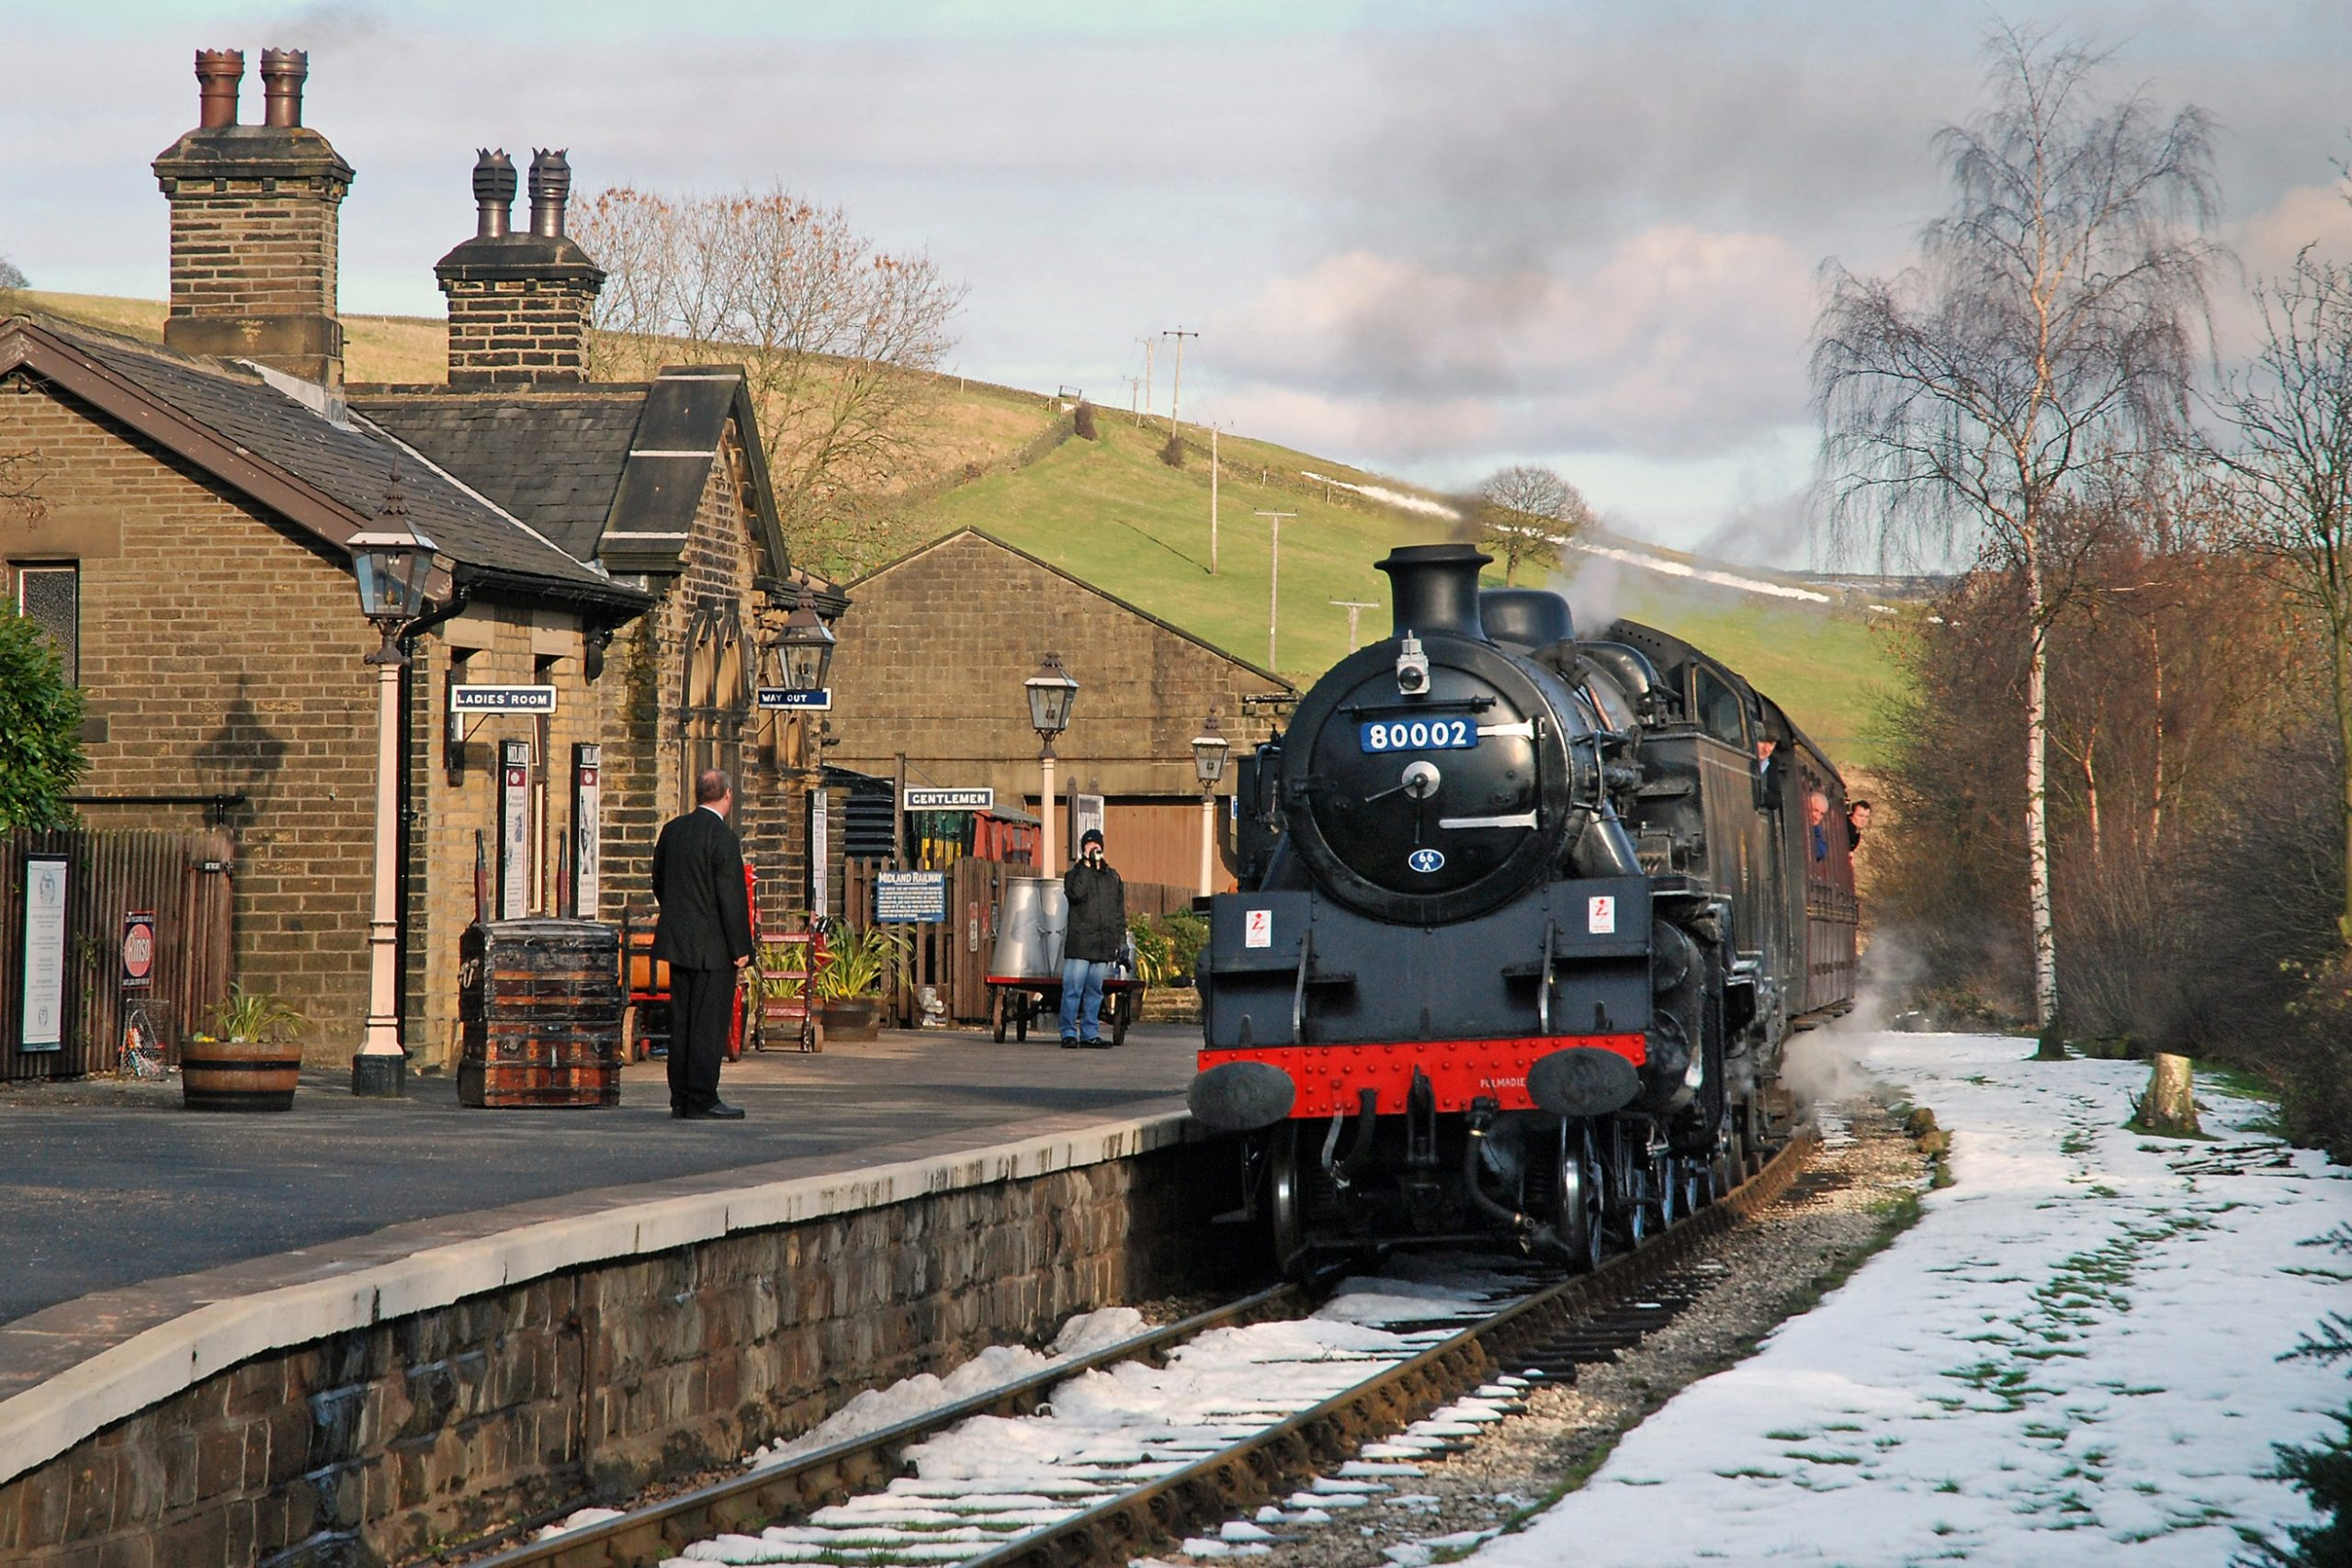 The Keighley & Worth Valley Railway from the Railway Children